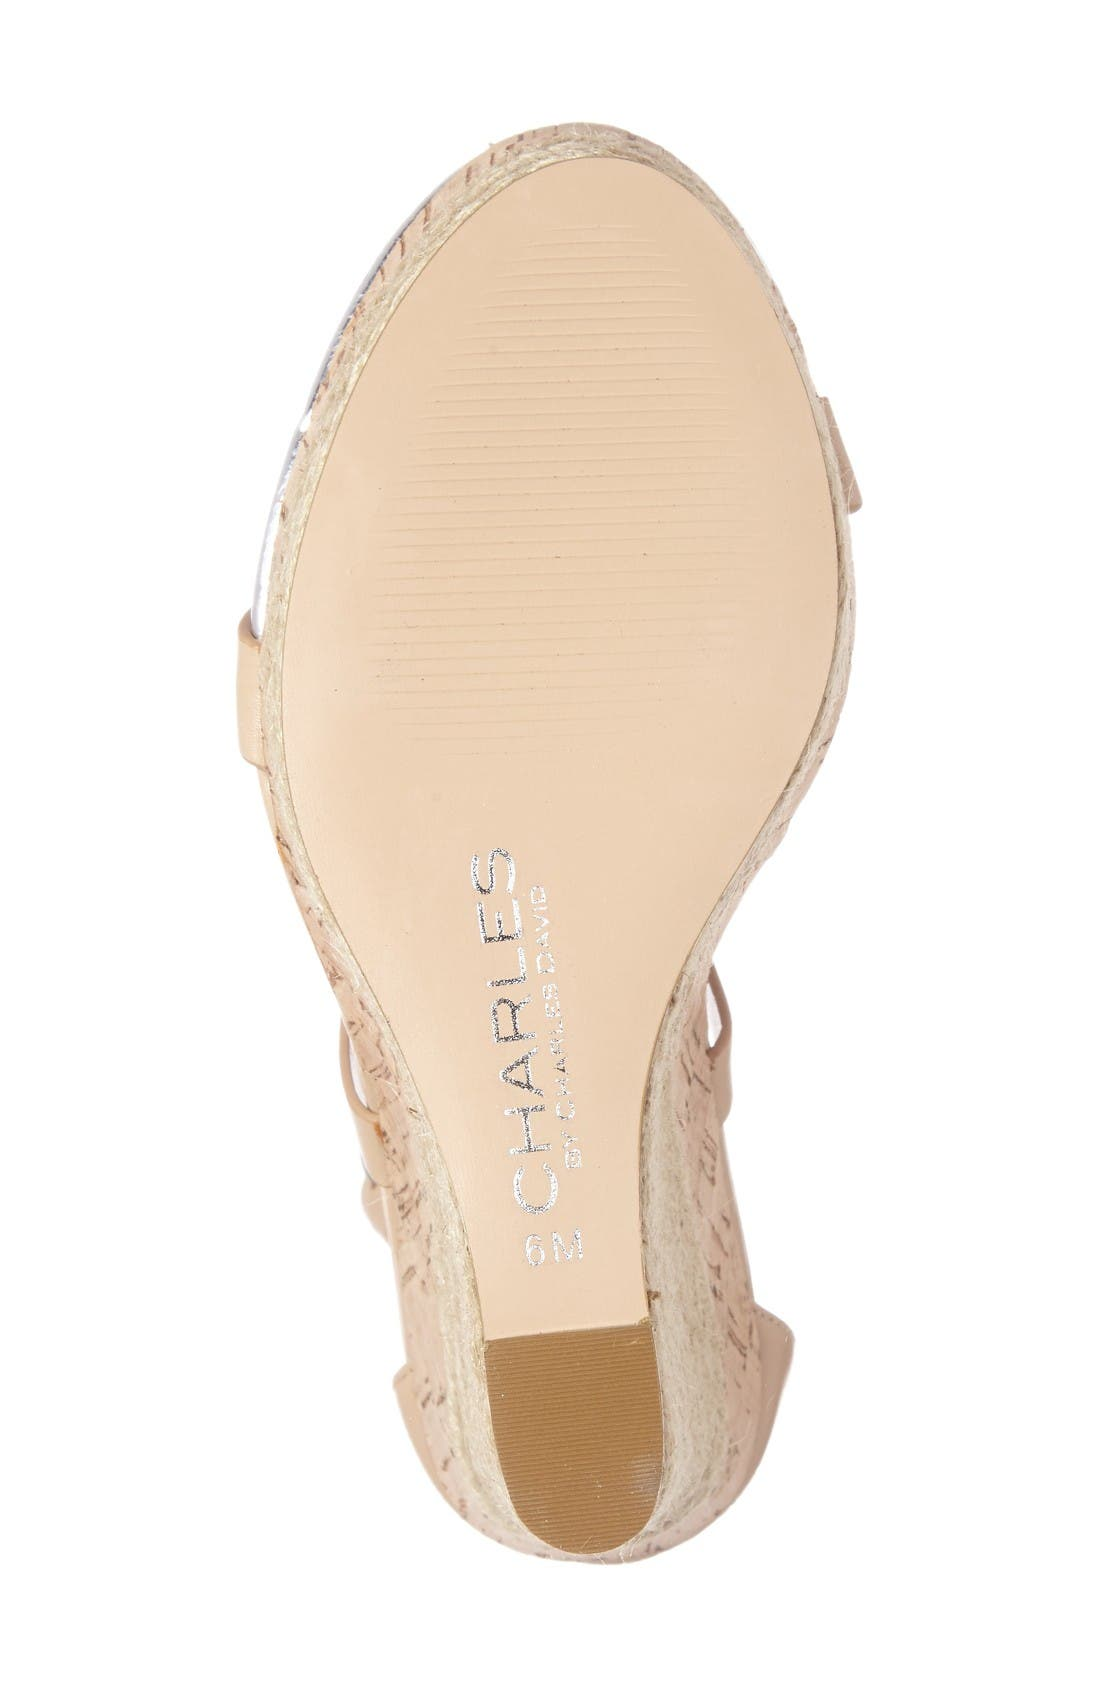 Aden Platform Wedge Sandal,                             Alternate thumbnail 4, color,                             Nude Leather